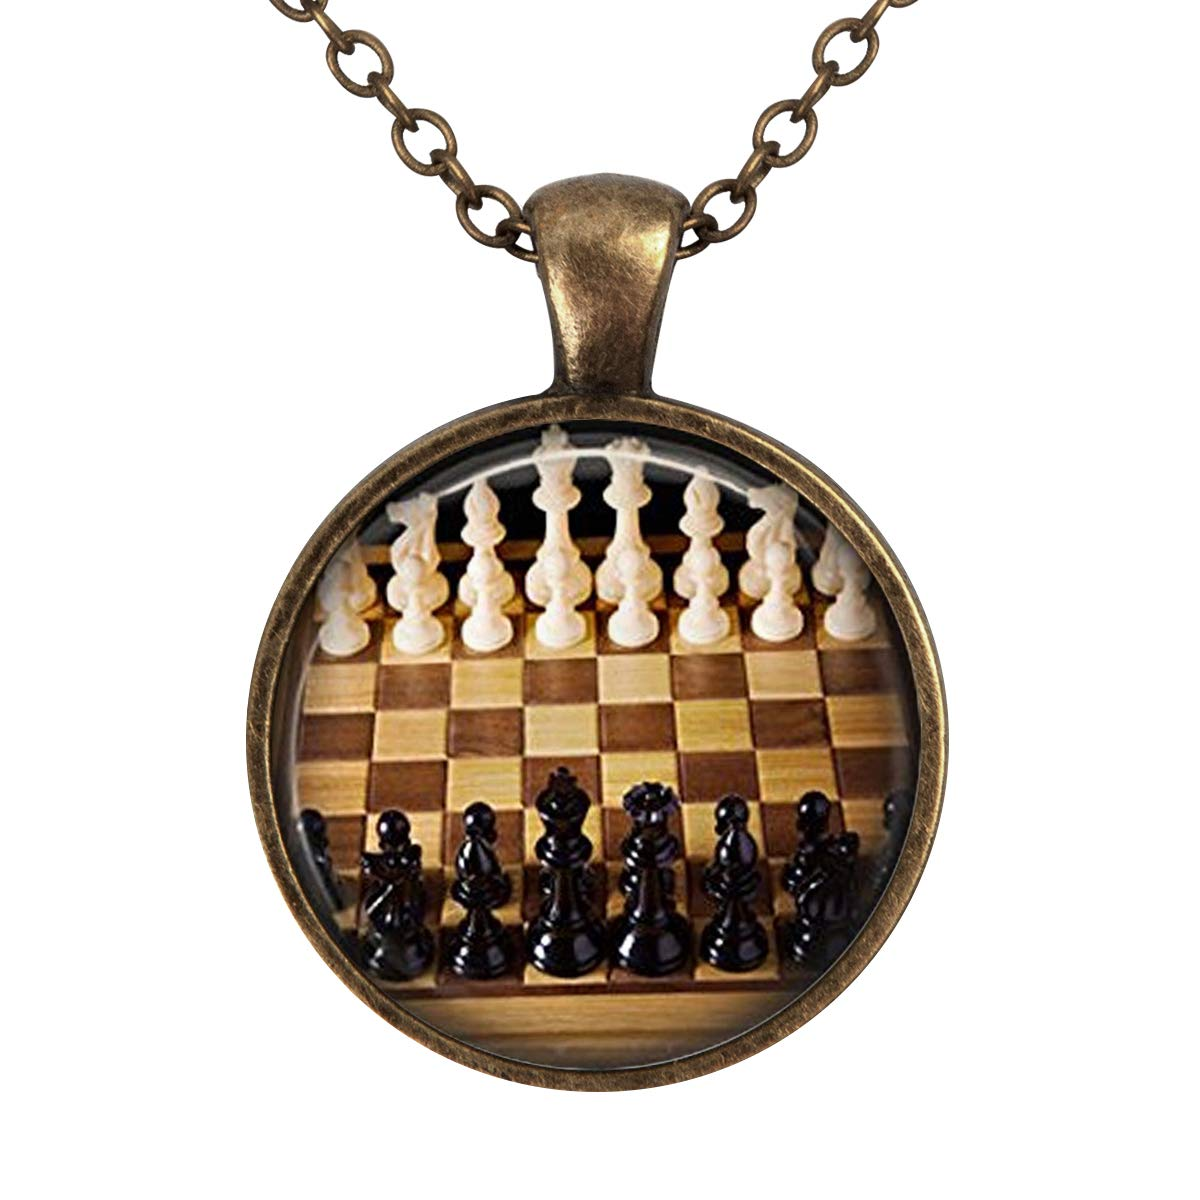 Lightrain Chess Game Pendant Necklace Vintage Bronze Chain Statement Necklace Handmade Jewelry Gifts